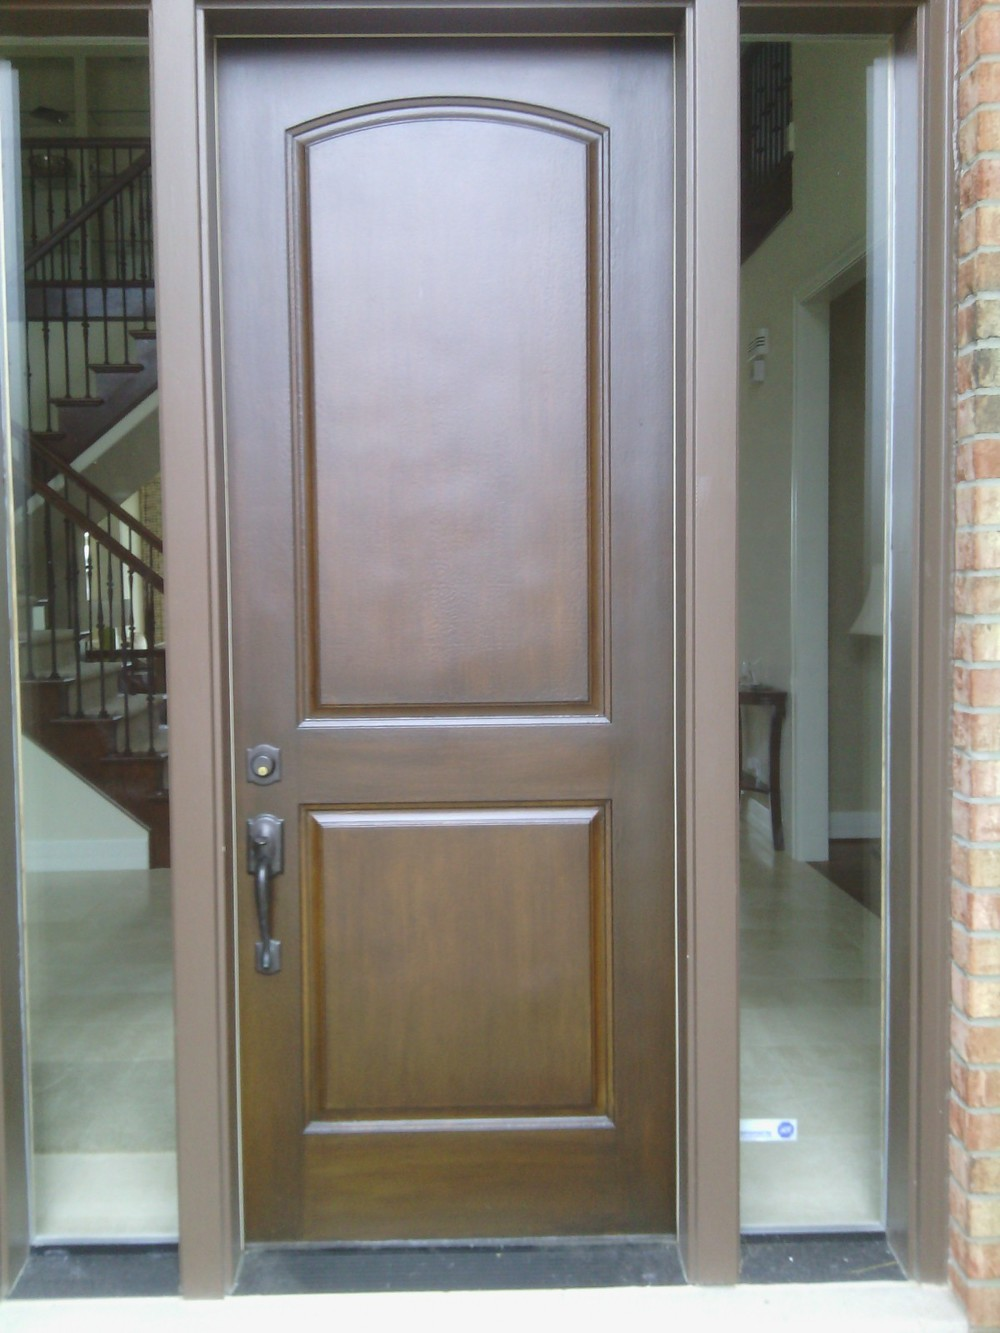 fiberglass-door-refinish-refinishing-restore-restoration-renew